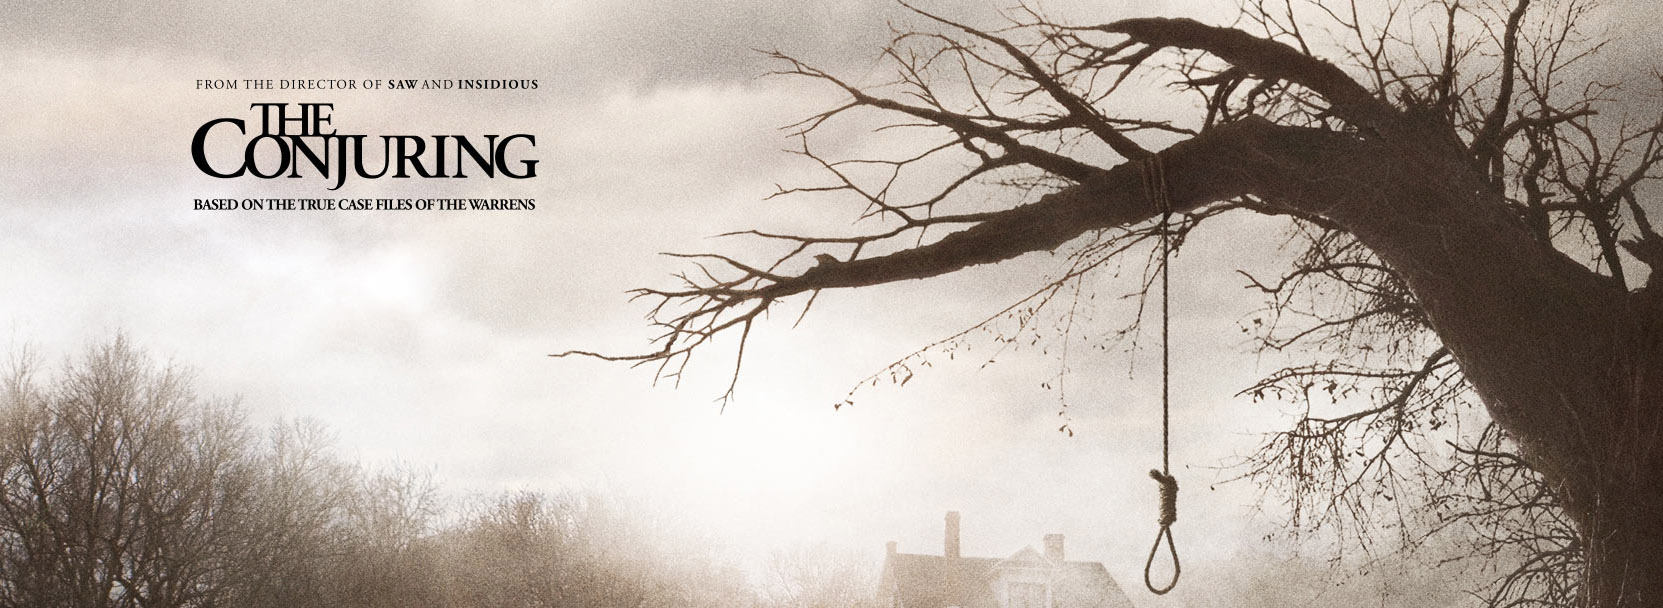 The Conjuring Movie Review Cryptic Rock